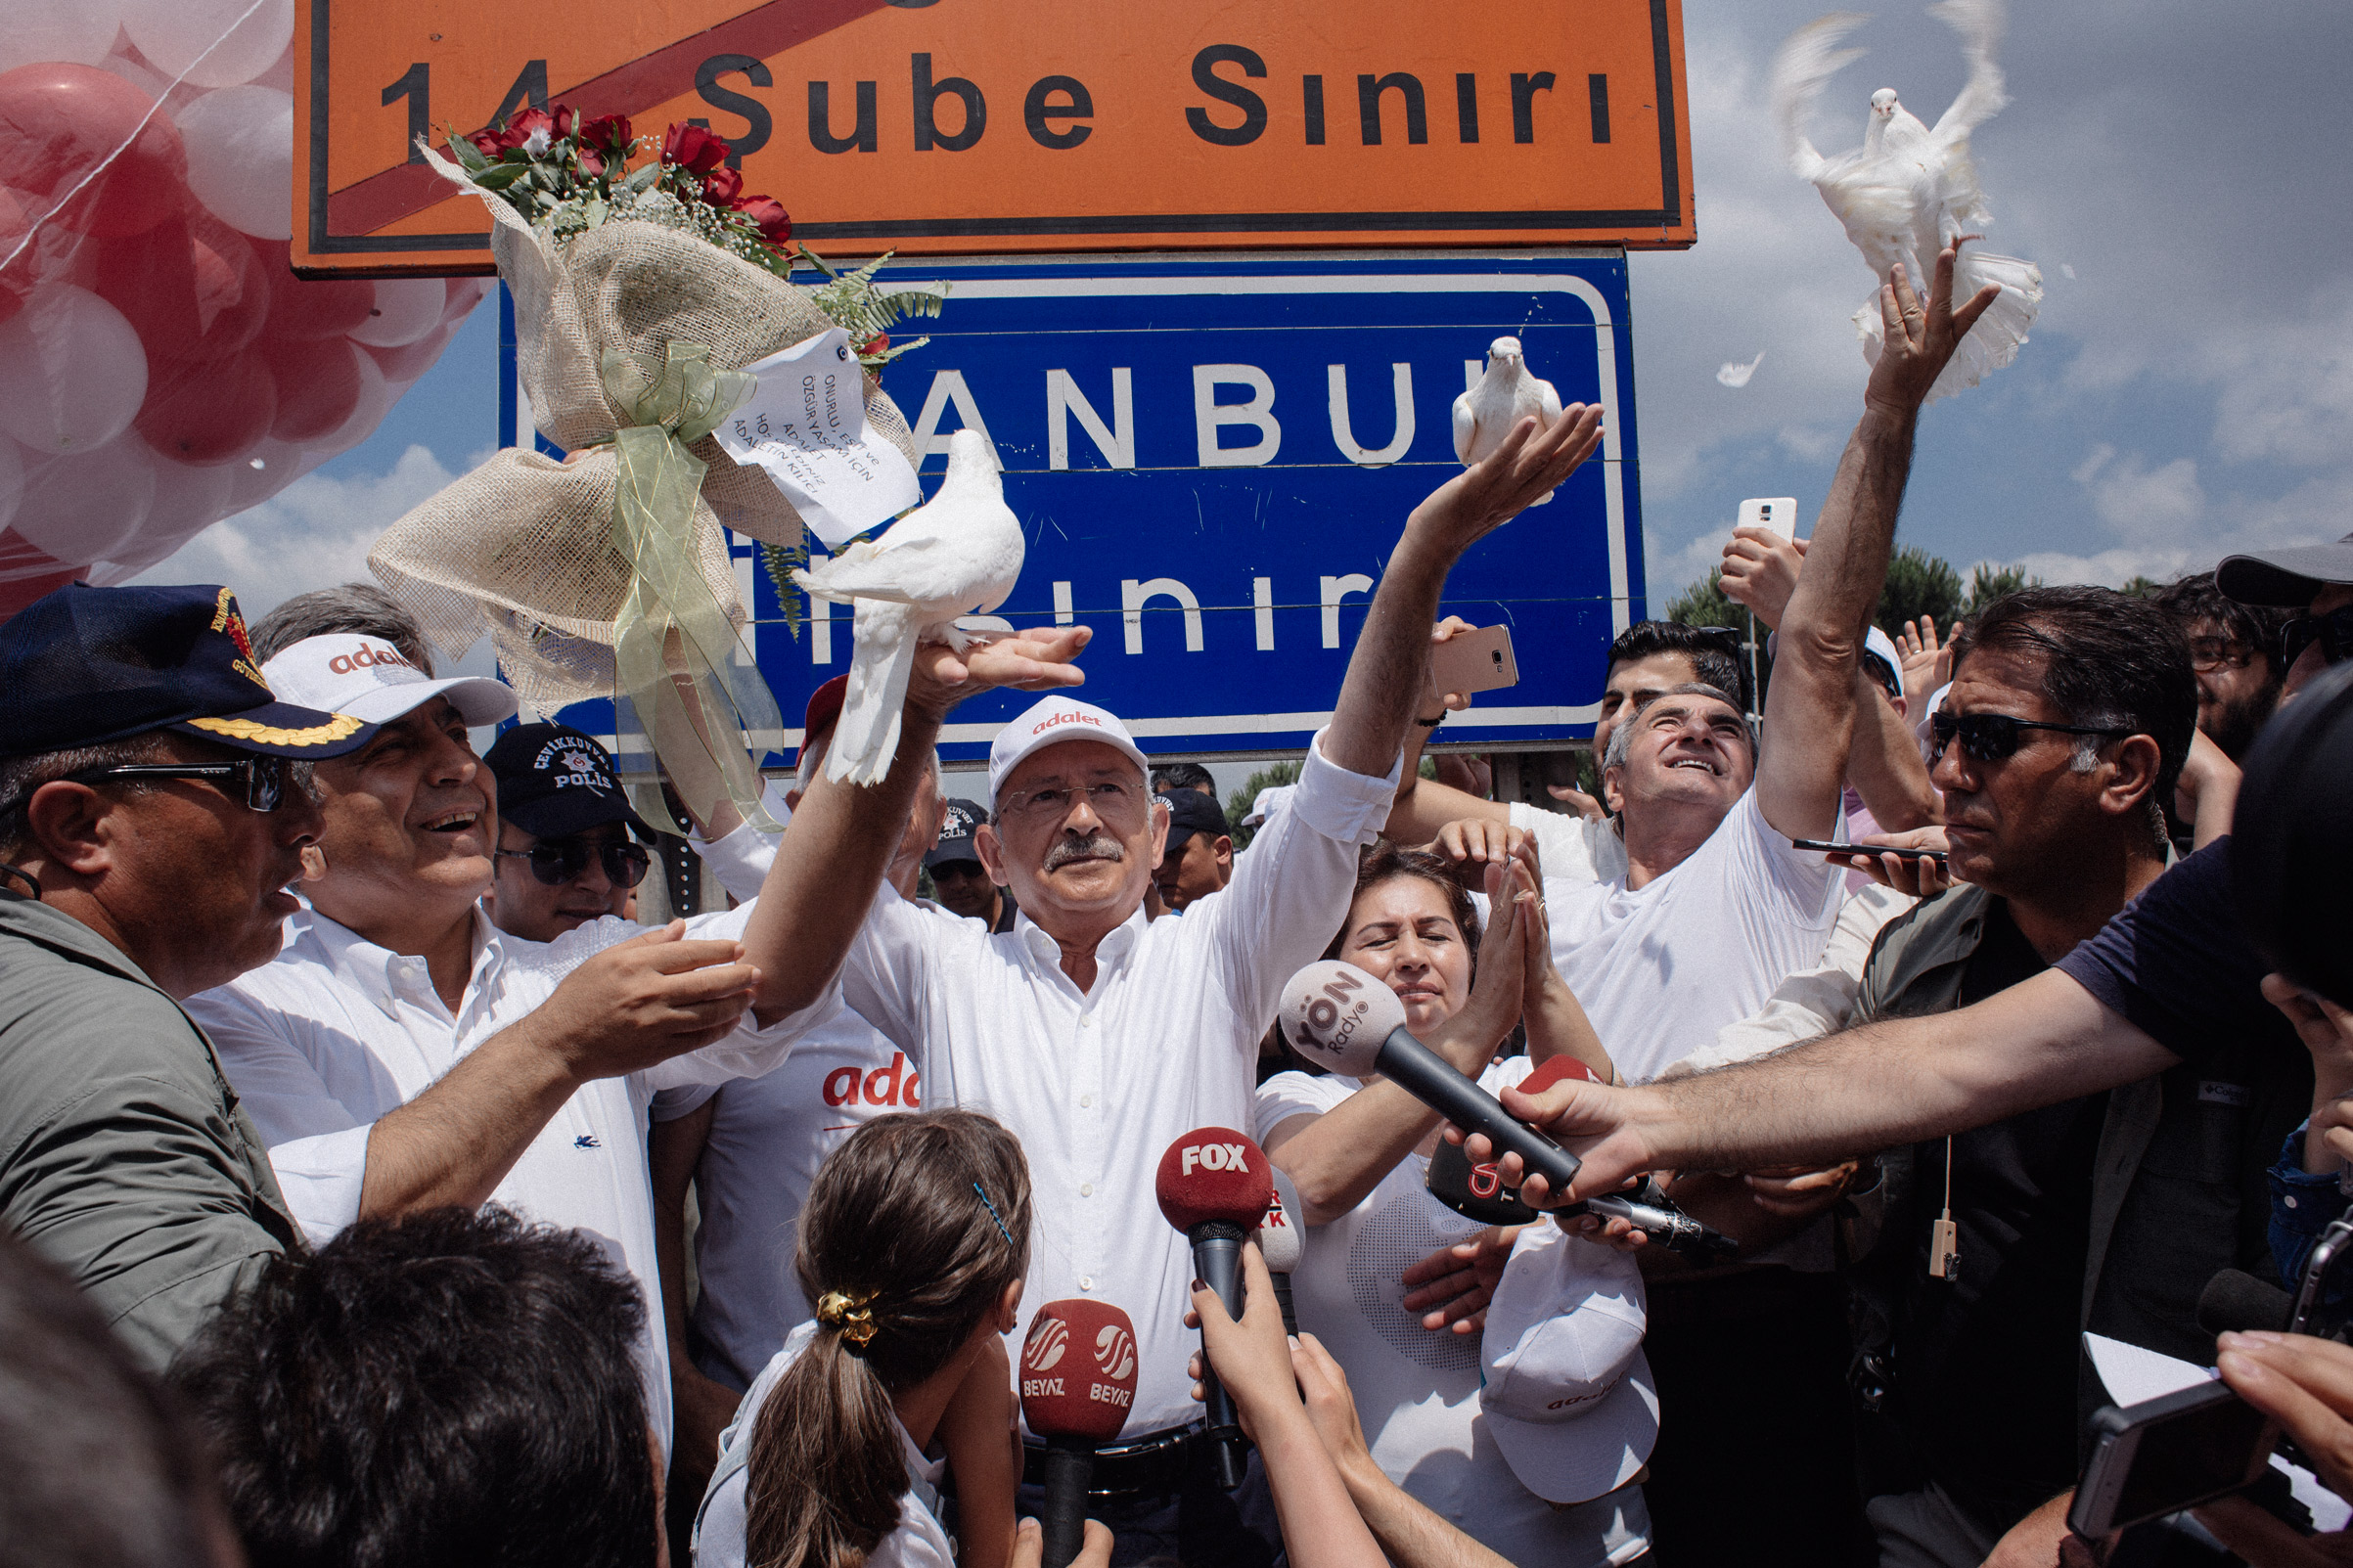 The head of Turkey's secularist Republican People's Party (CHP), Kemal Kilicdaroglu, enters Istanbul with thousands of supporters after the walking from Ankara leading the Justice March. He stands near the sign for the city where he released doves.